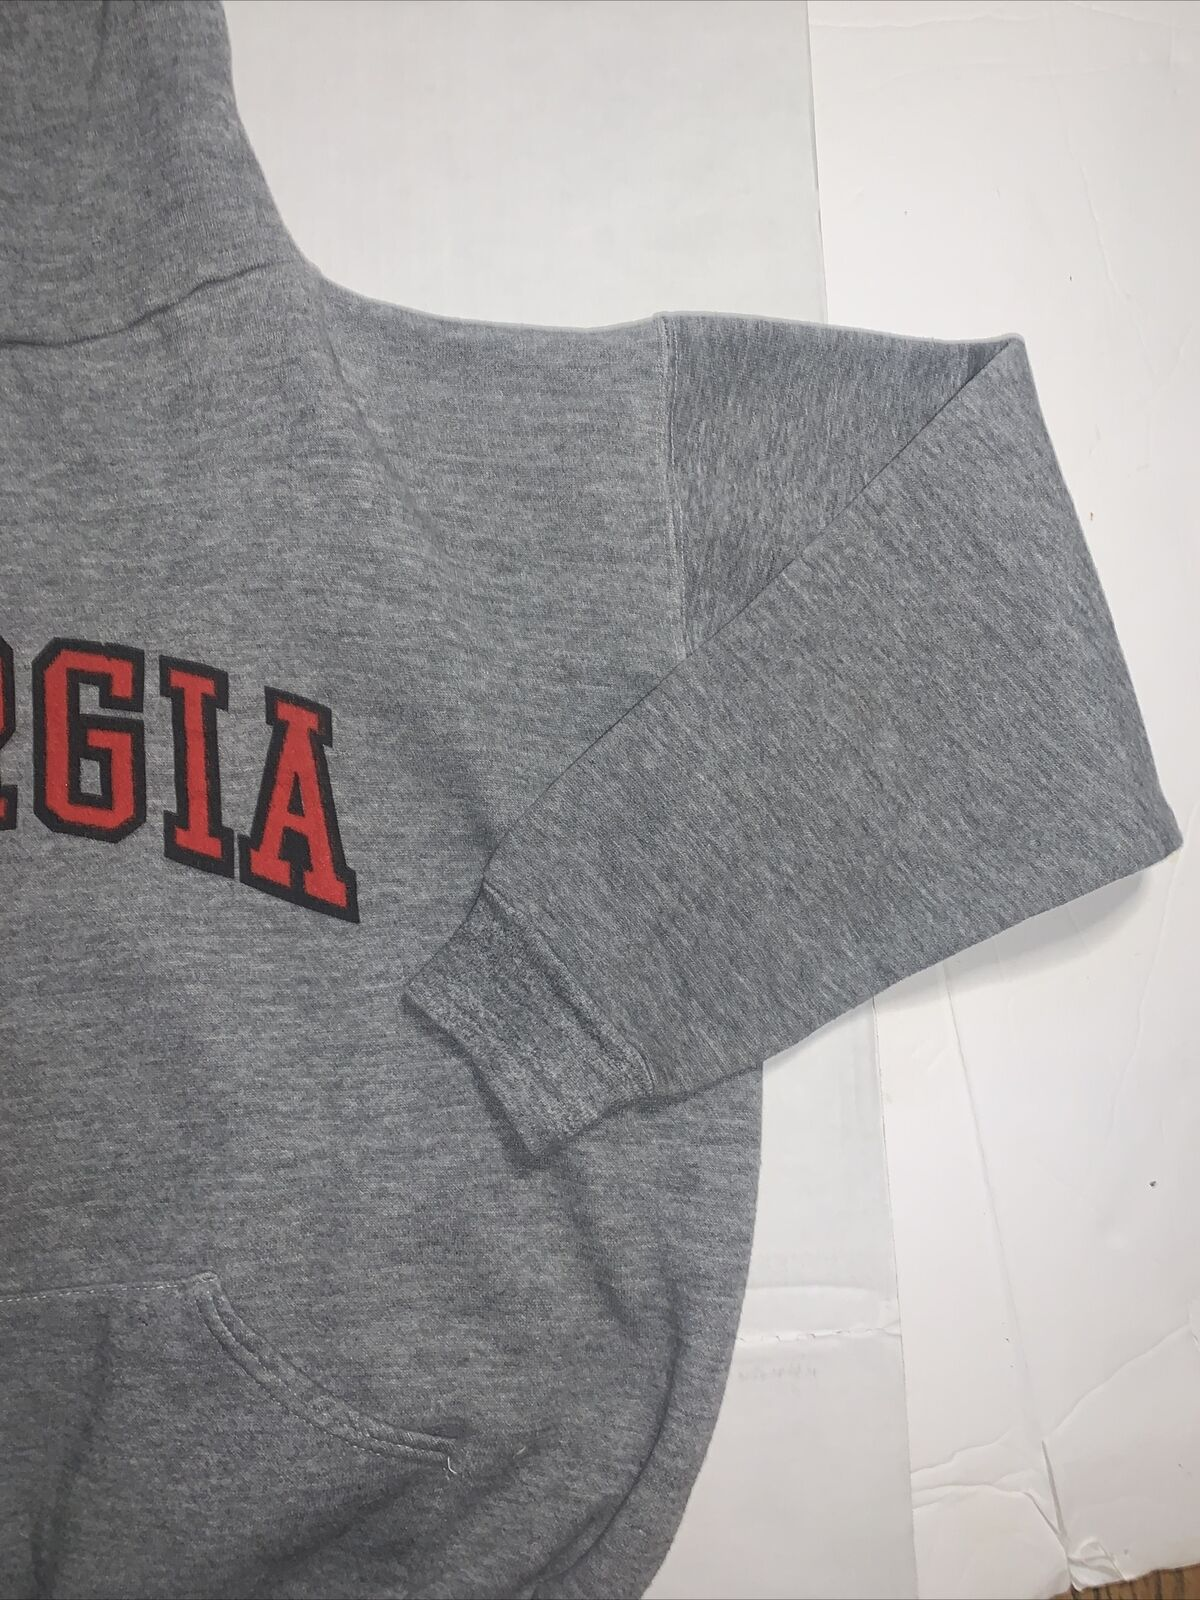 GEORGIA BULLDOGS VINTAGE 70s RUSSELL ATHLETIC COL… - image 4